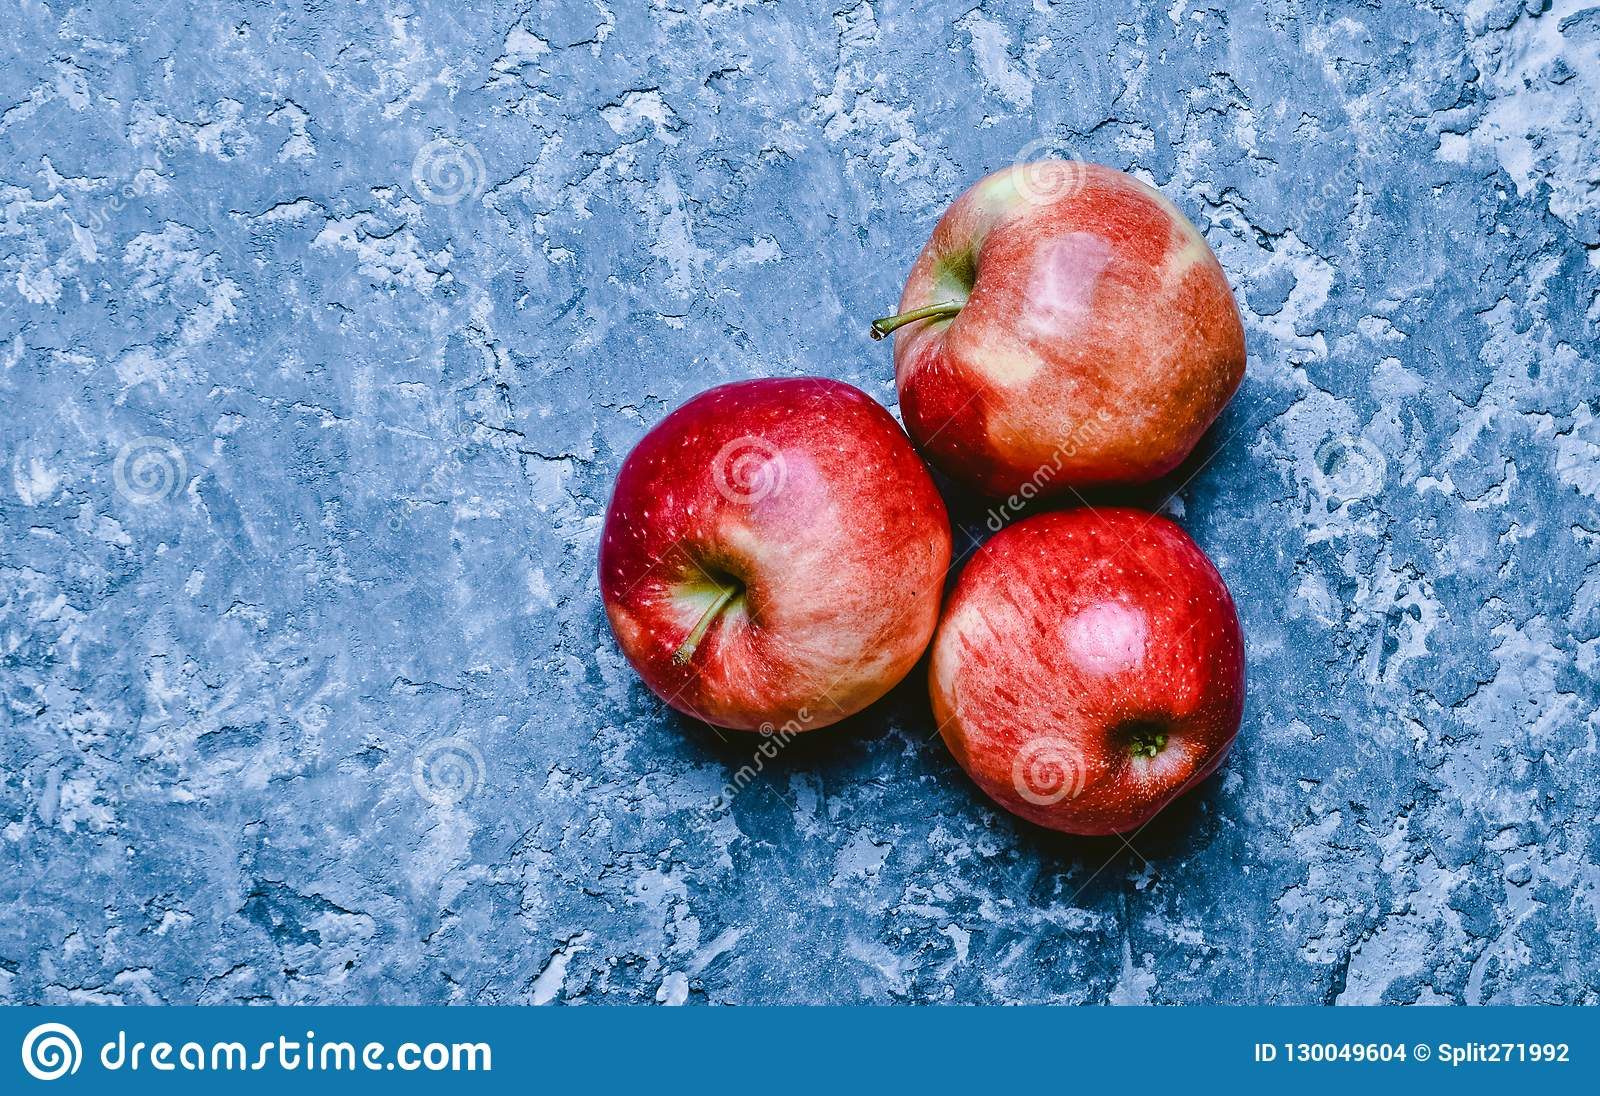 Red ripe apples on a concrete table. Fresh fruits. Loft and rust